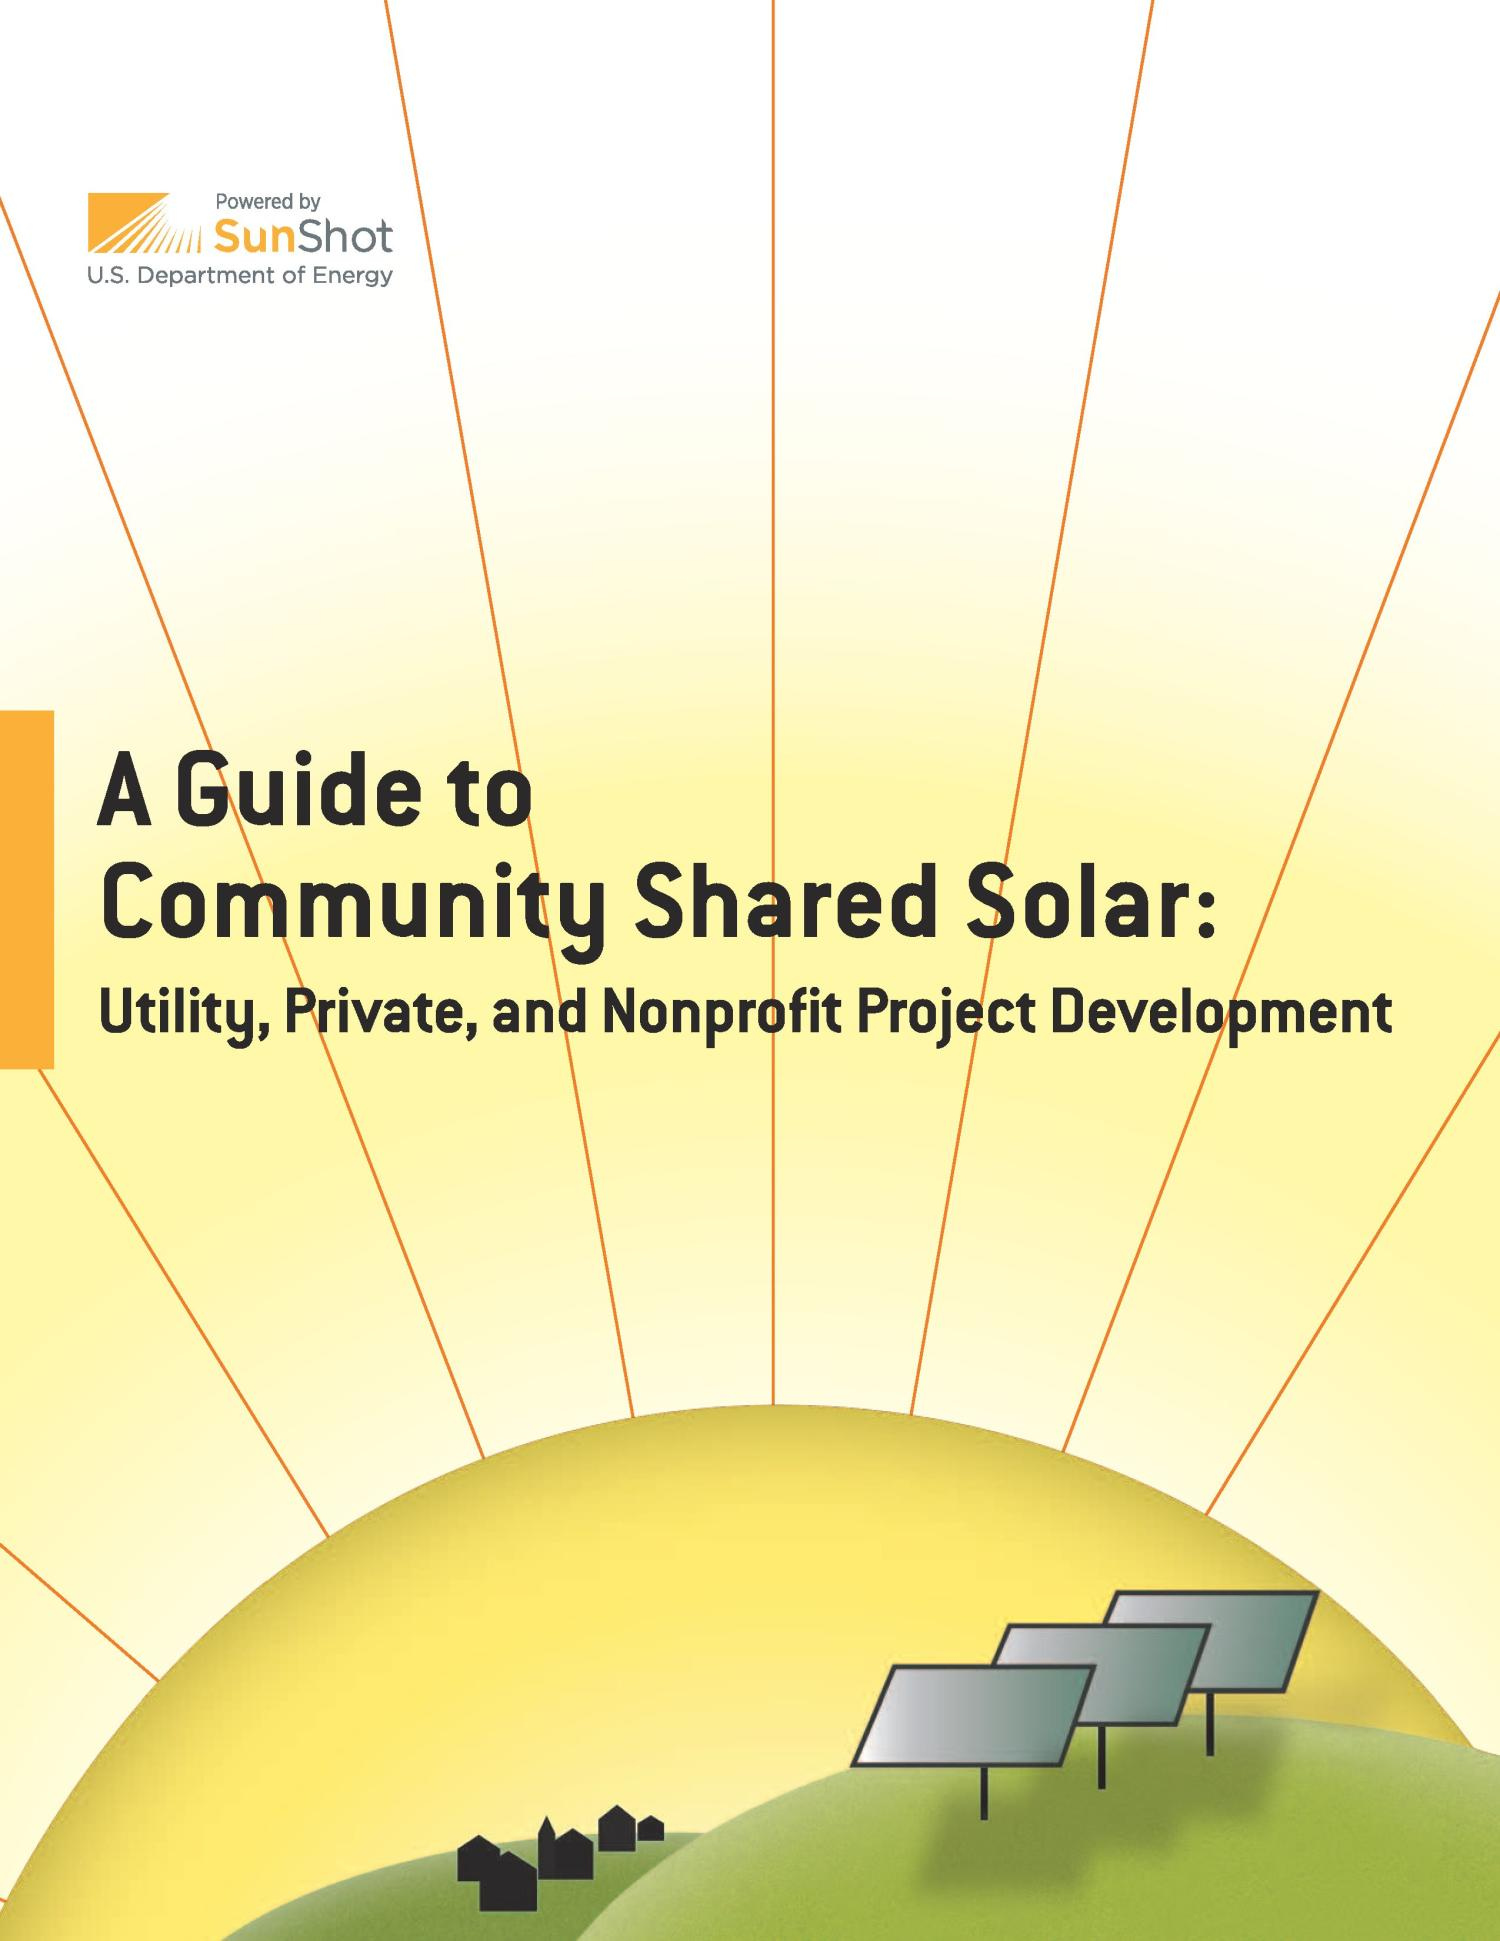 A Guide to Community Shared Solar: Utility, Private, and Non-Profit Project Development (Book)                                                                                                      [Sequence #]: 1 of 76